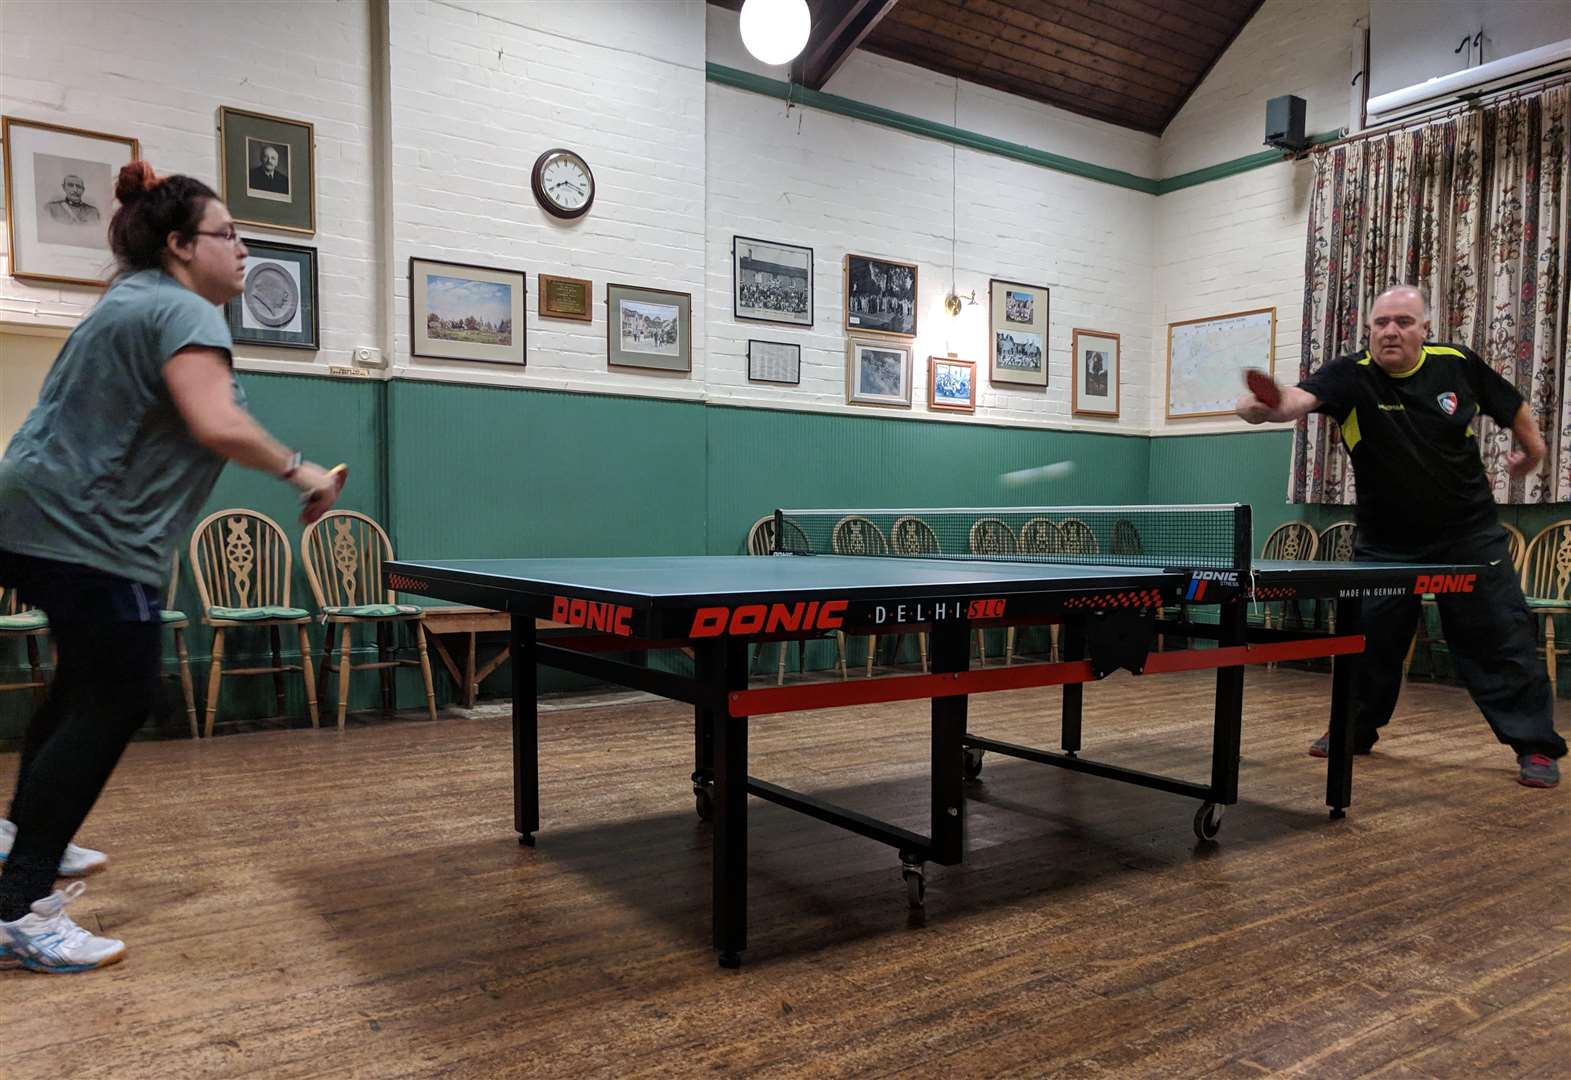 TABLE TENNIS: MTTG's quest for the perfect campaign continues